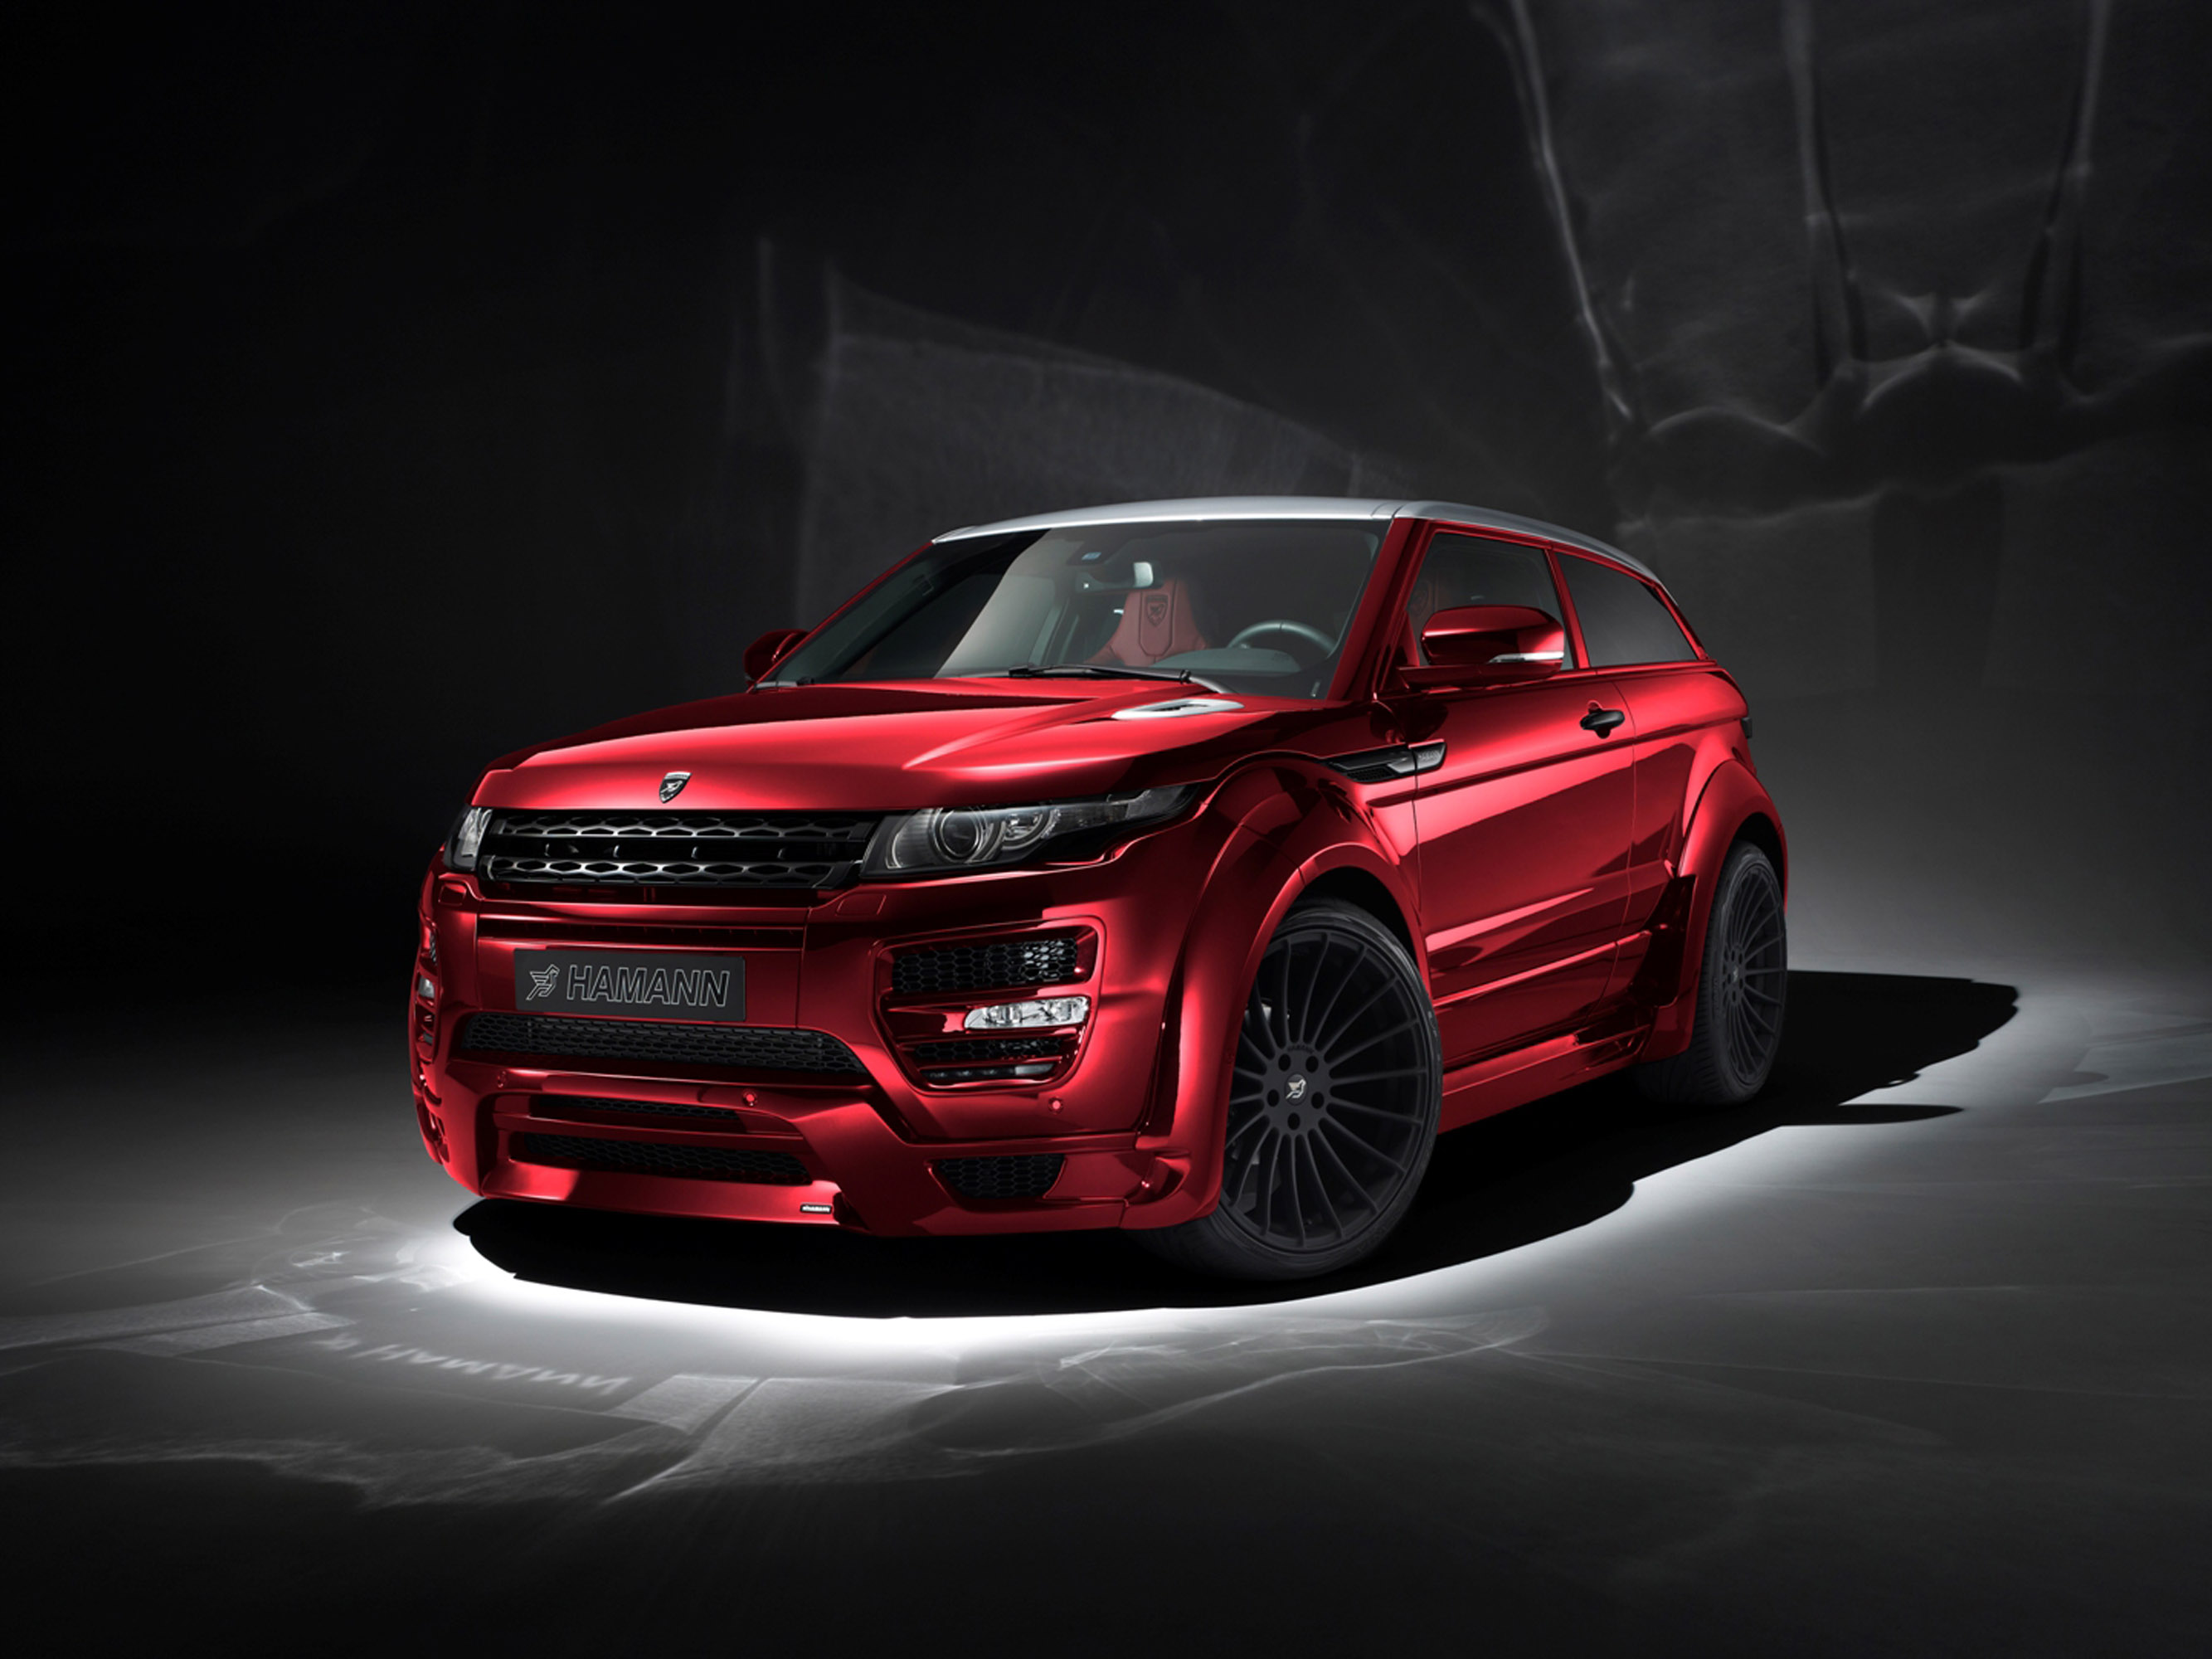 hamann range rover evoque. Black Bedroom Furniture Sets. Home Design Ideas